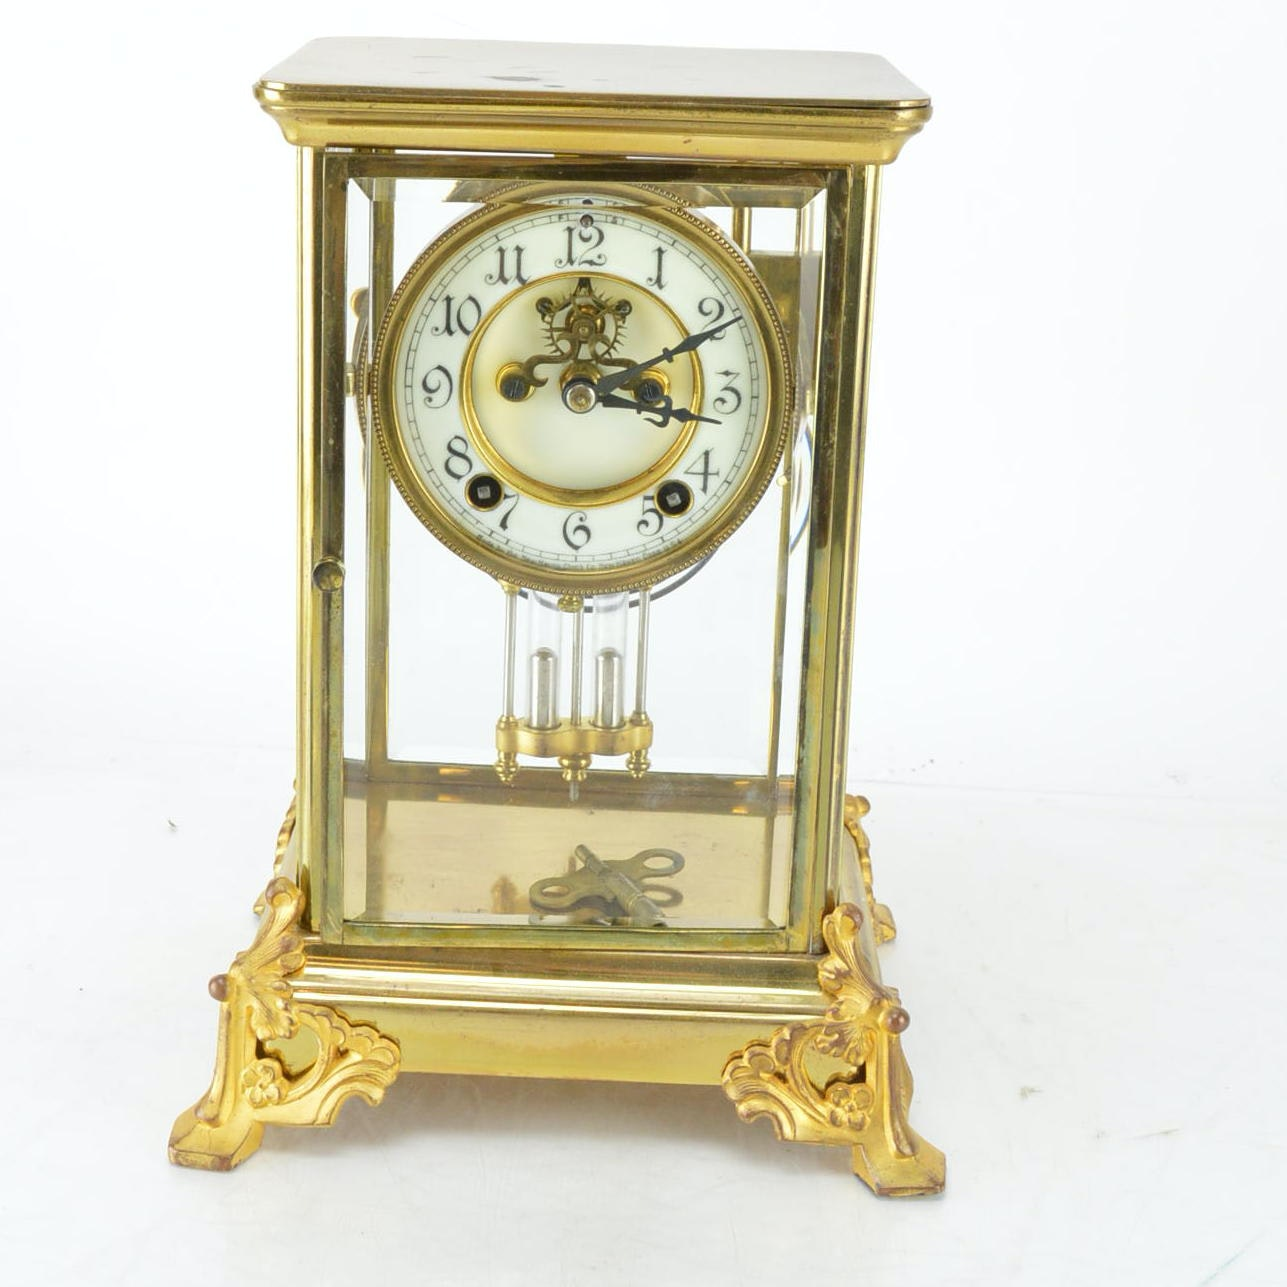 Vintage Brass and Glass Mantel Clock